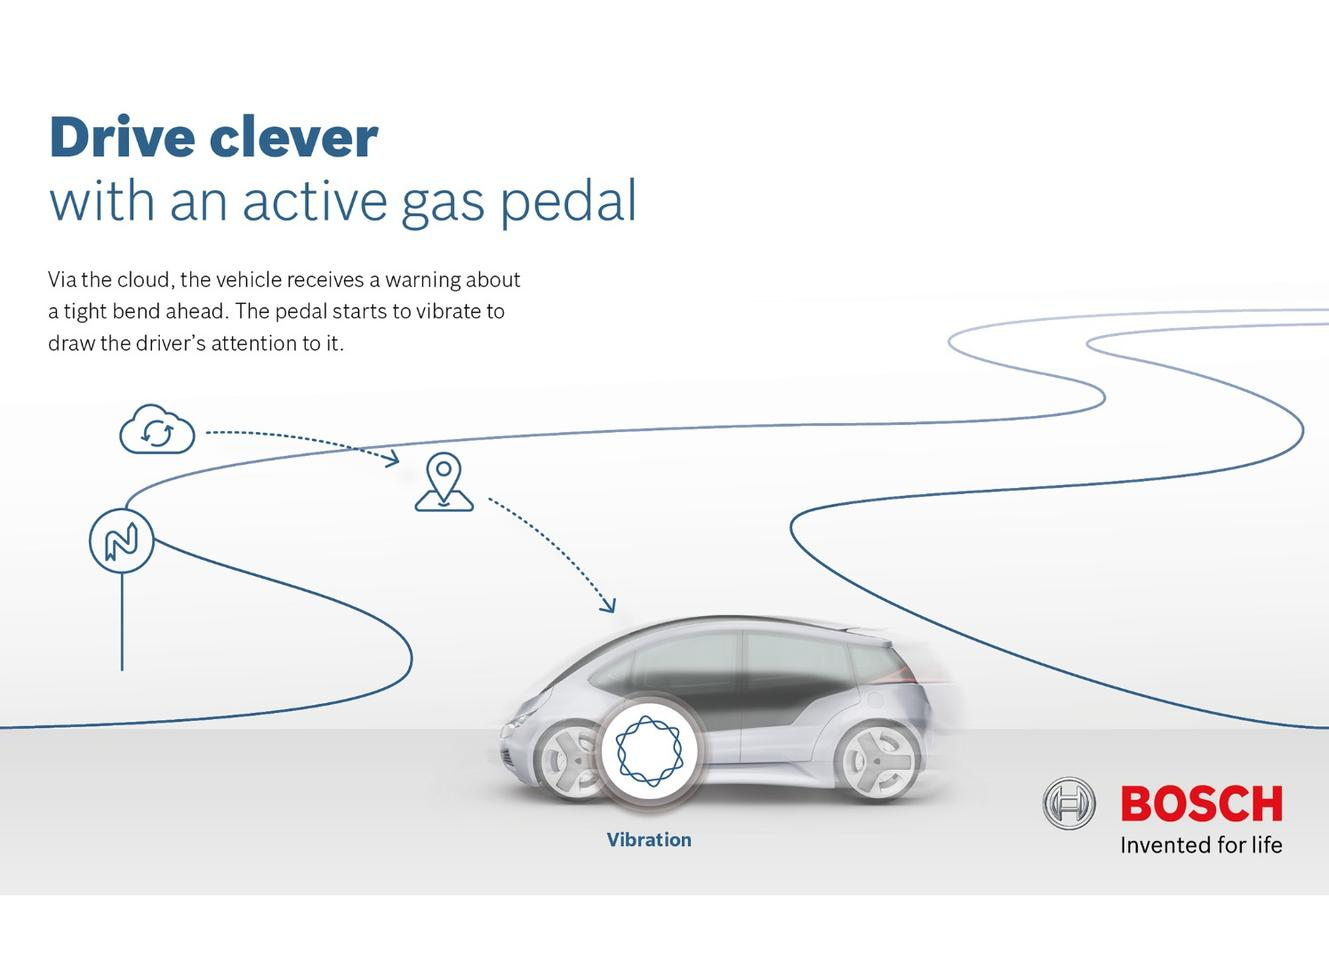 Bosch estimates that if some or all of these were implemented on a typical vehicle, drivers could see a reduction in fuel consumption of up to 7 percent